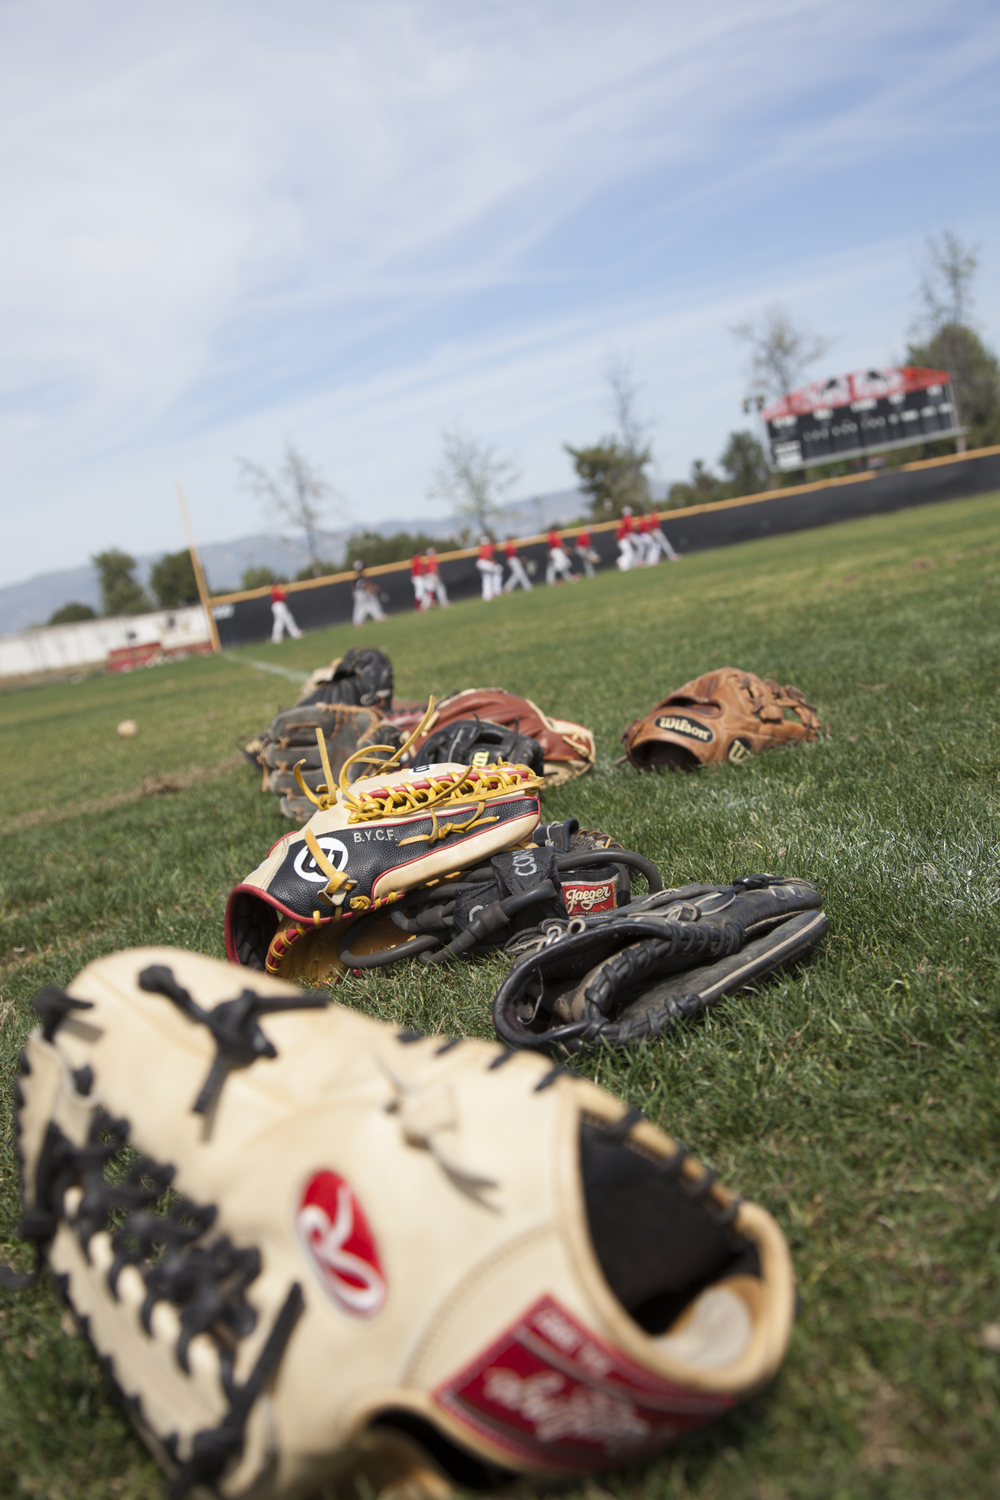 Gloves lay on the grassas the team practices in the background at Joe Kelly Field on Tuesday, March 10, 2015. Woodland Hills, Calif.  Read the full story here